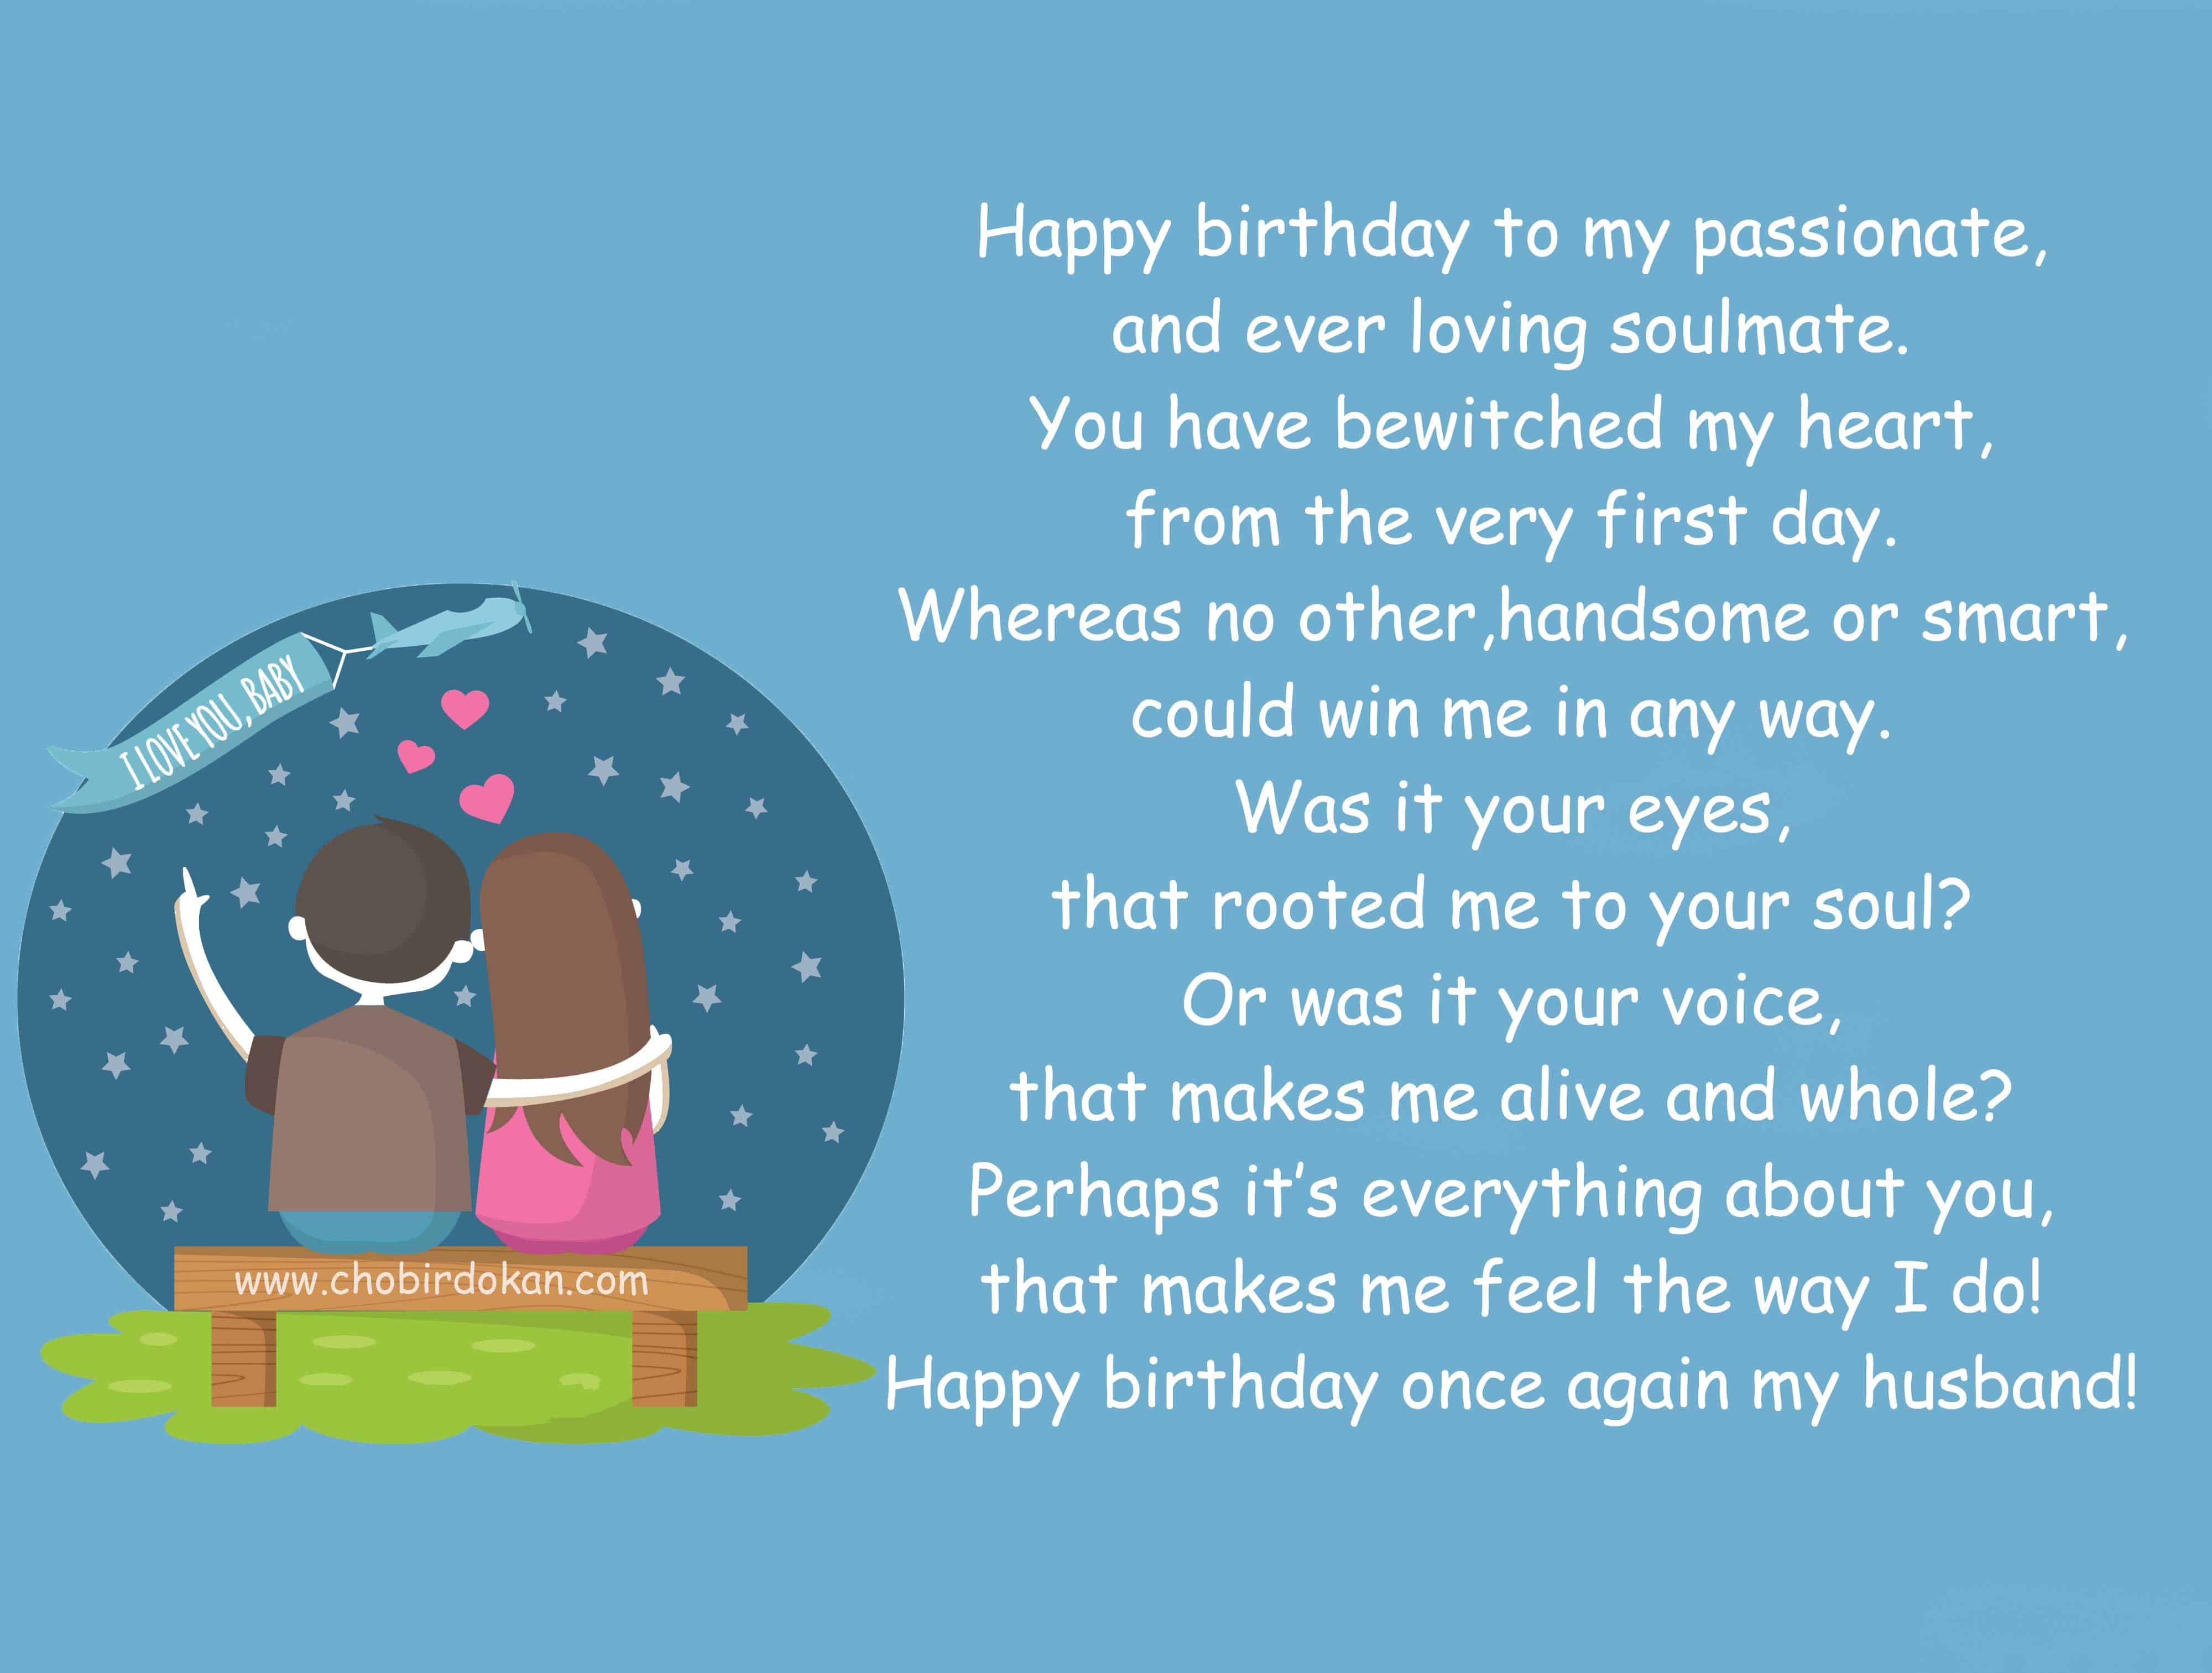 50 Happy Birthday Images For Him With Quotes Ilove Messages